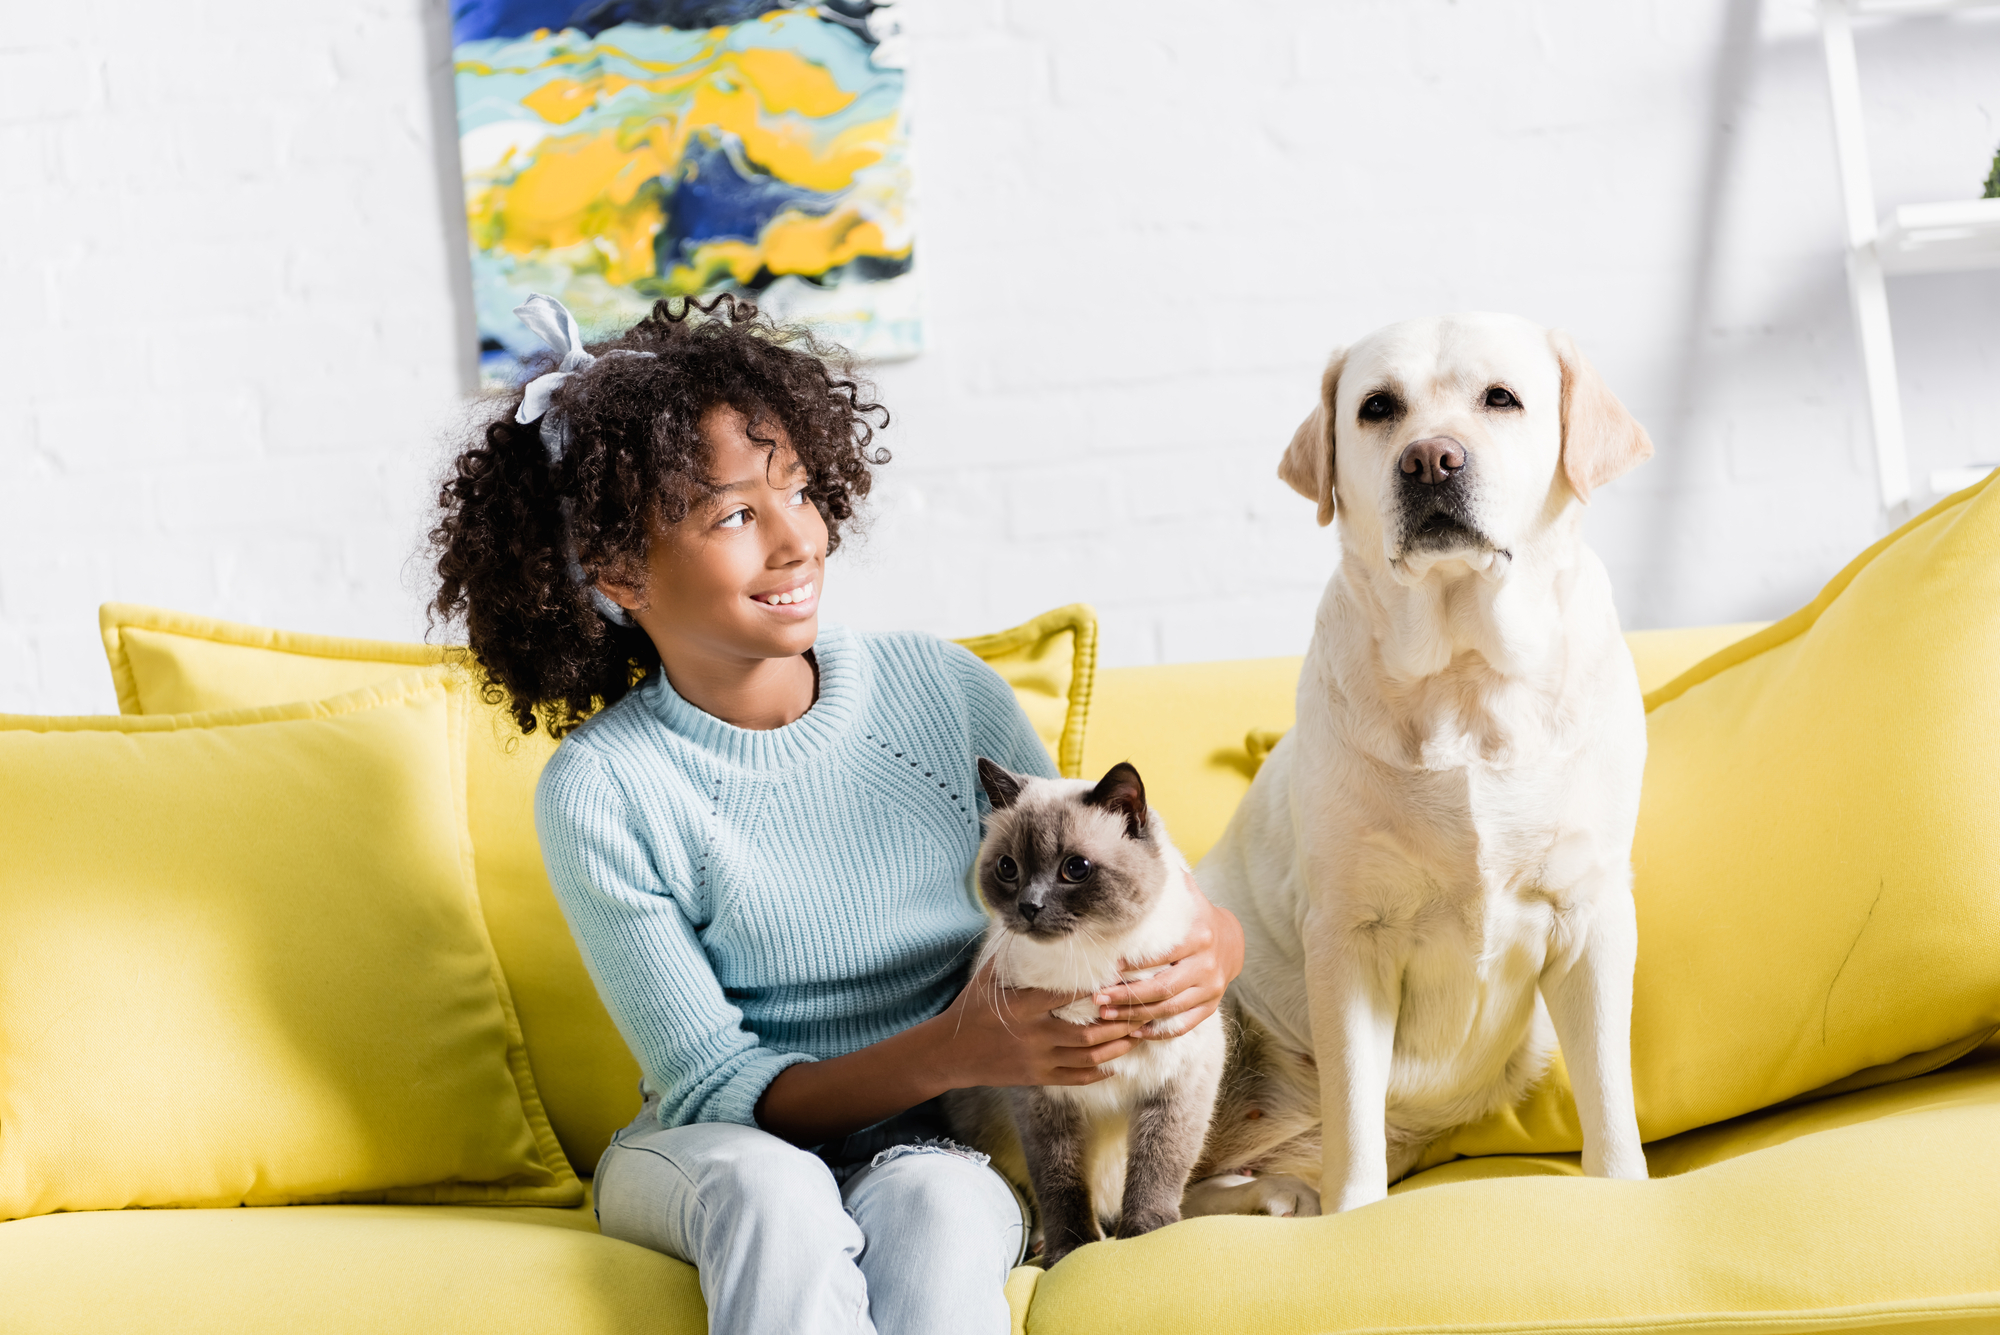 Cheerful girl with headband embracing siamese cat and looking at retriever sitting on yellow sofa, on blurred background